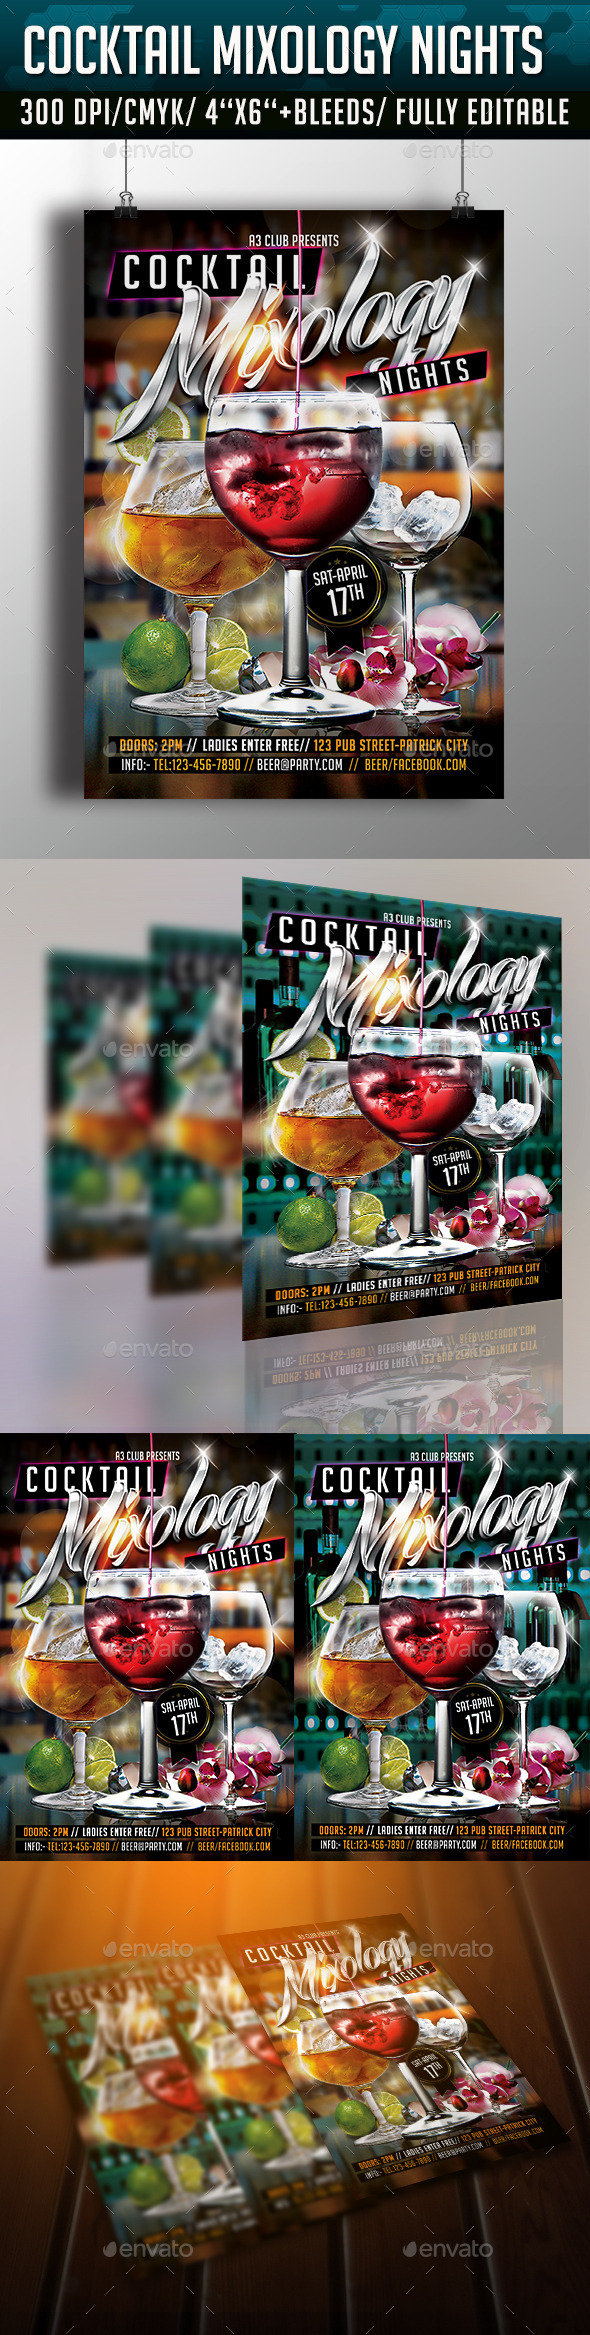 GraphicRiver Cocktail Mixology Nights Flyer 10861827